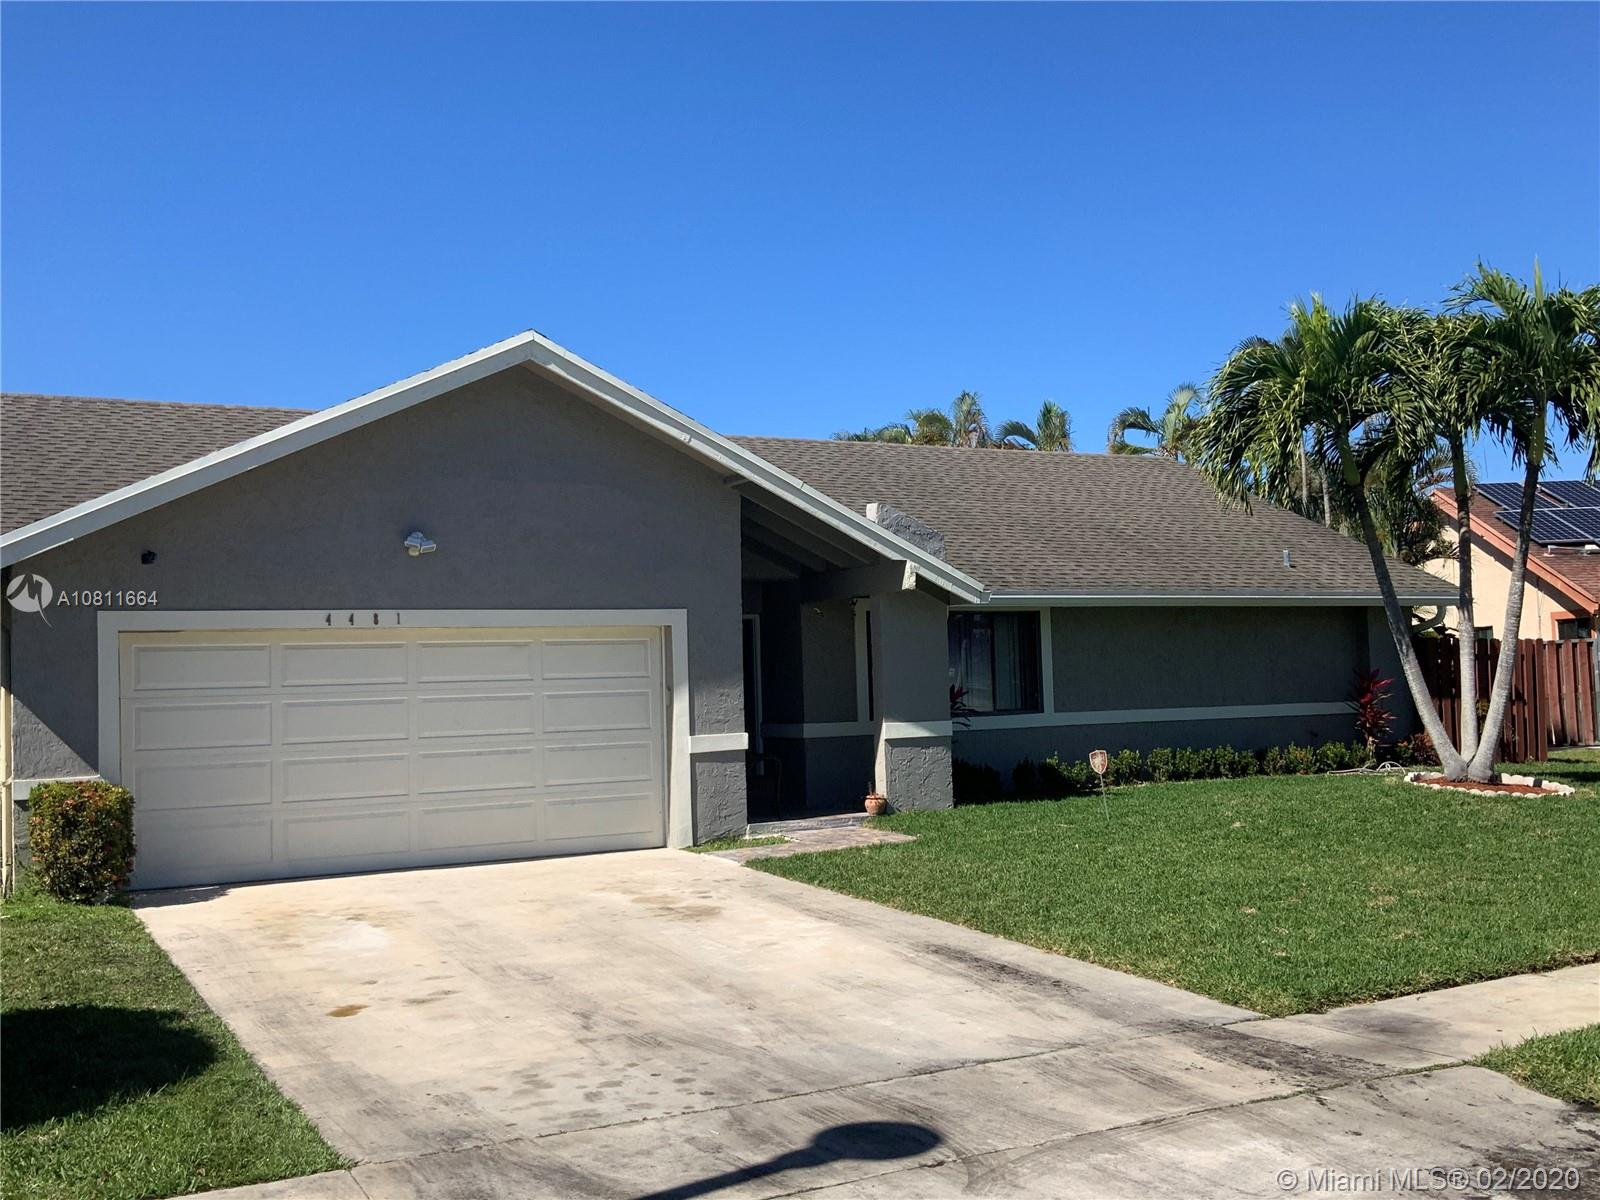 Large 3 Bed/2Bath, 2 car garage, high ceilings, split Bedroom plan, wood and granite kitchen, tile and wood floors. Great home for families or any buyer.  Spacious back yard. Lovely well maintained community.  Convenient to major highways.   Tenant Occupied.